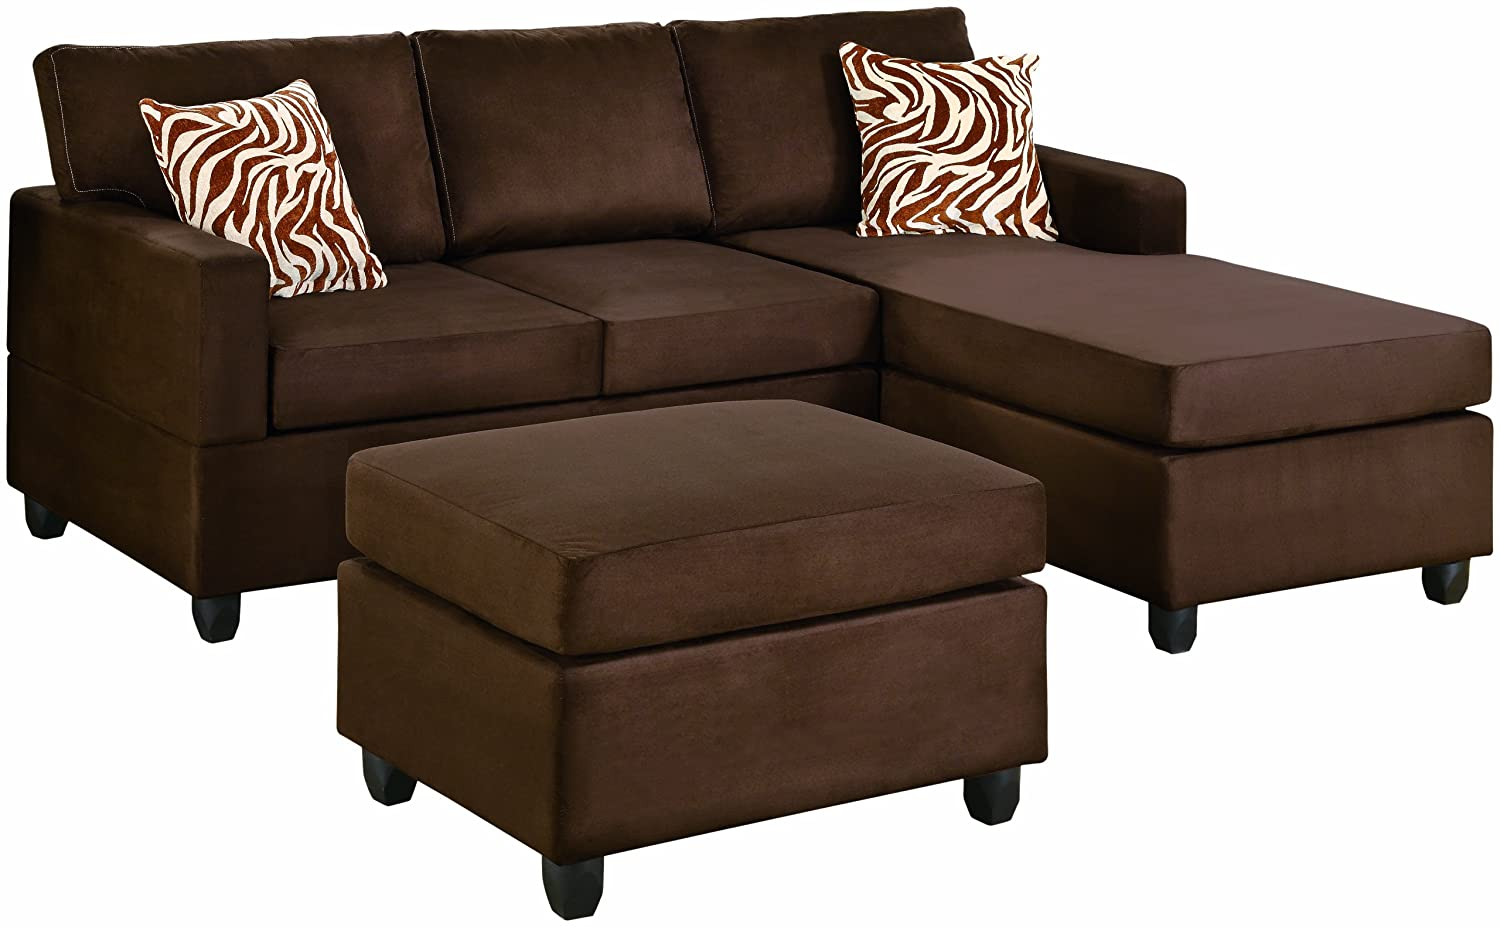 amazoncom bobkona manhattan reversible microfiber 3piece sectional sofa set chocolate kitchen u0026 dining